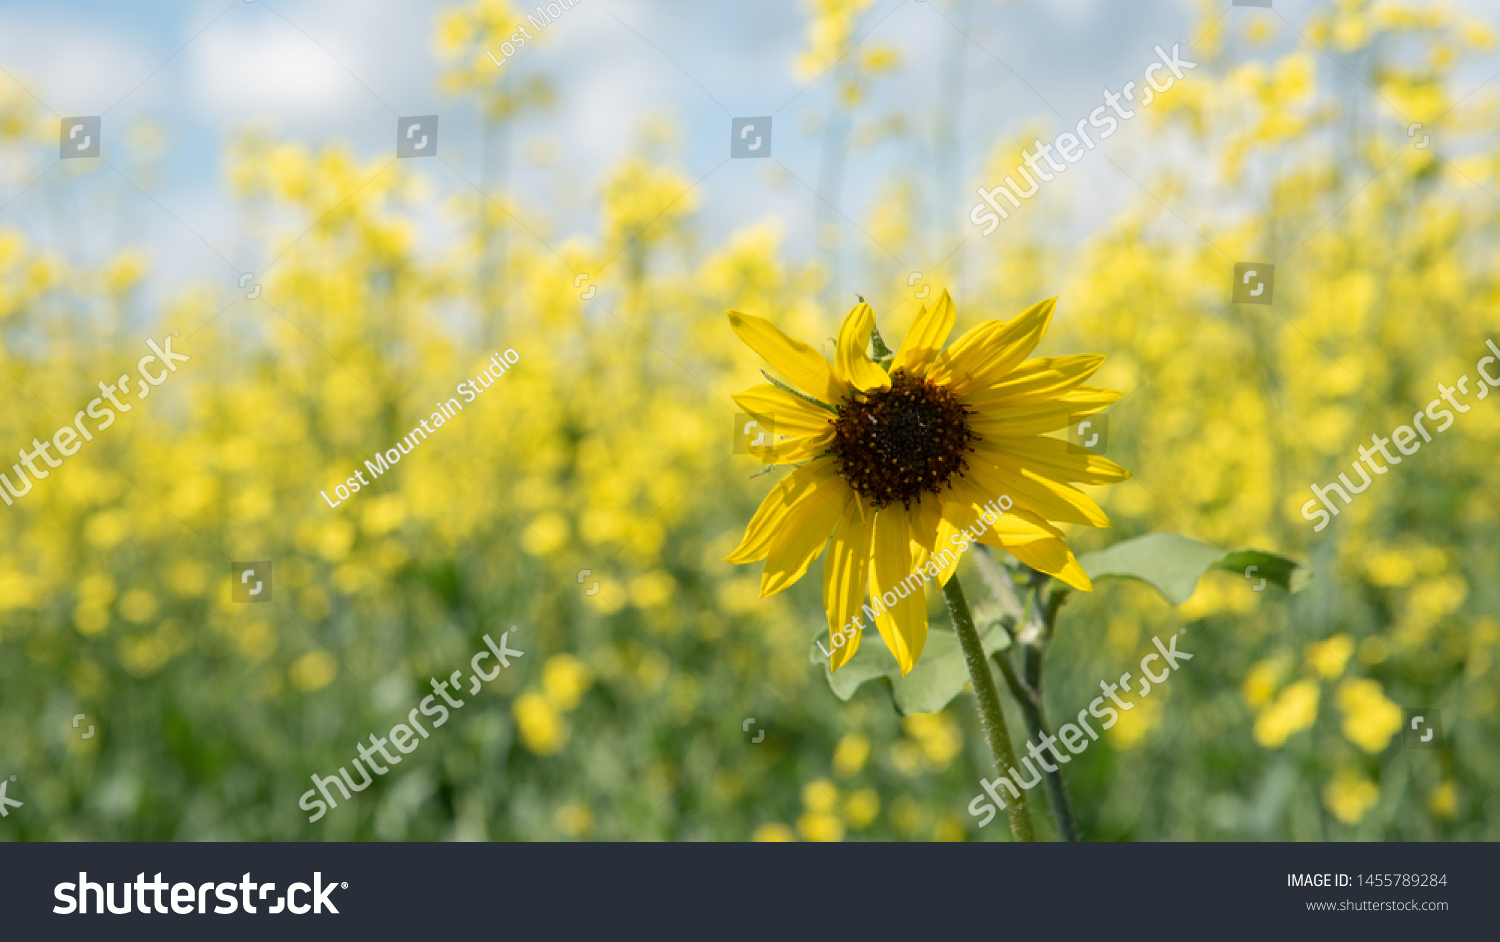 stock-photo-wild-sunflower-in-front-of-a